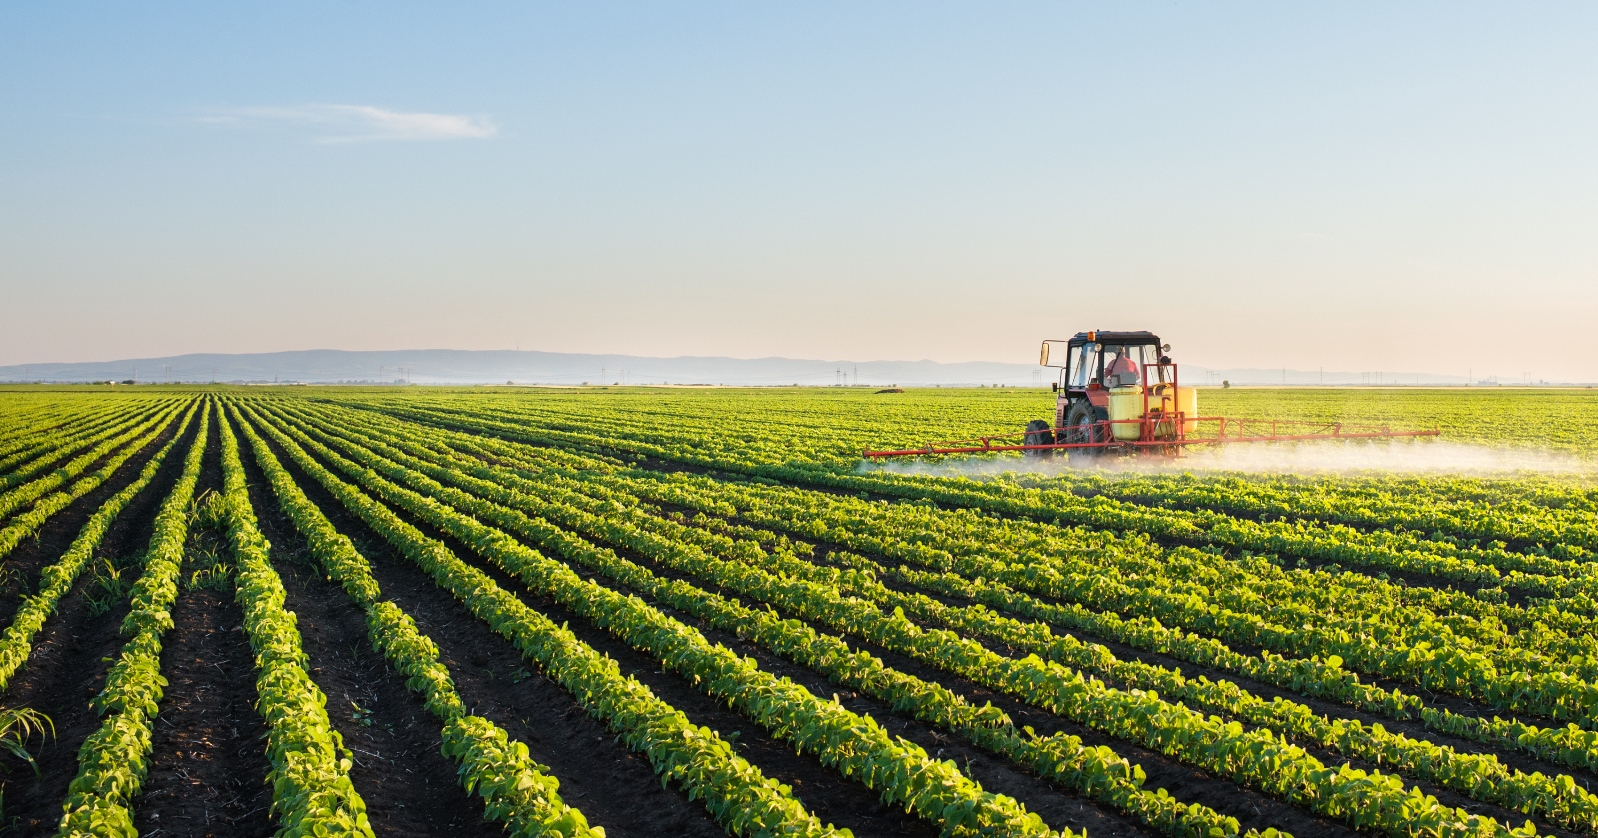 TERIA at the service of precision agriculture